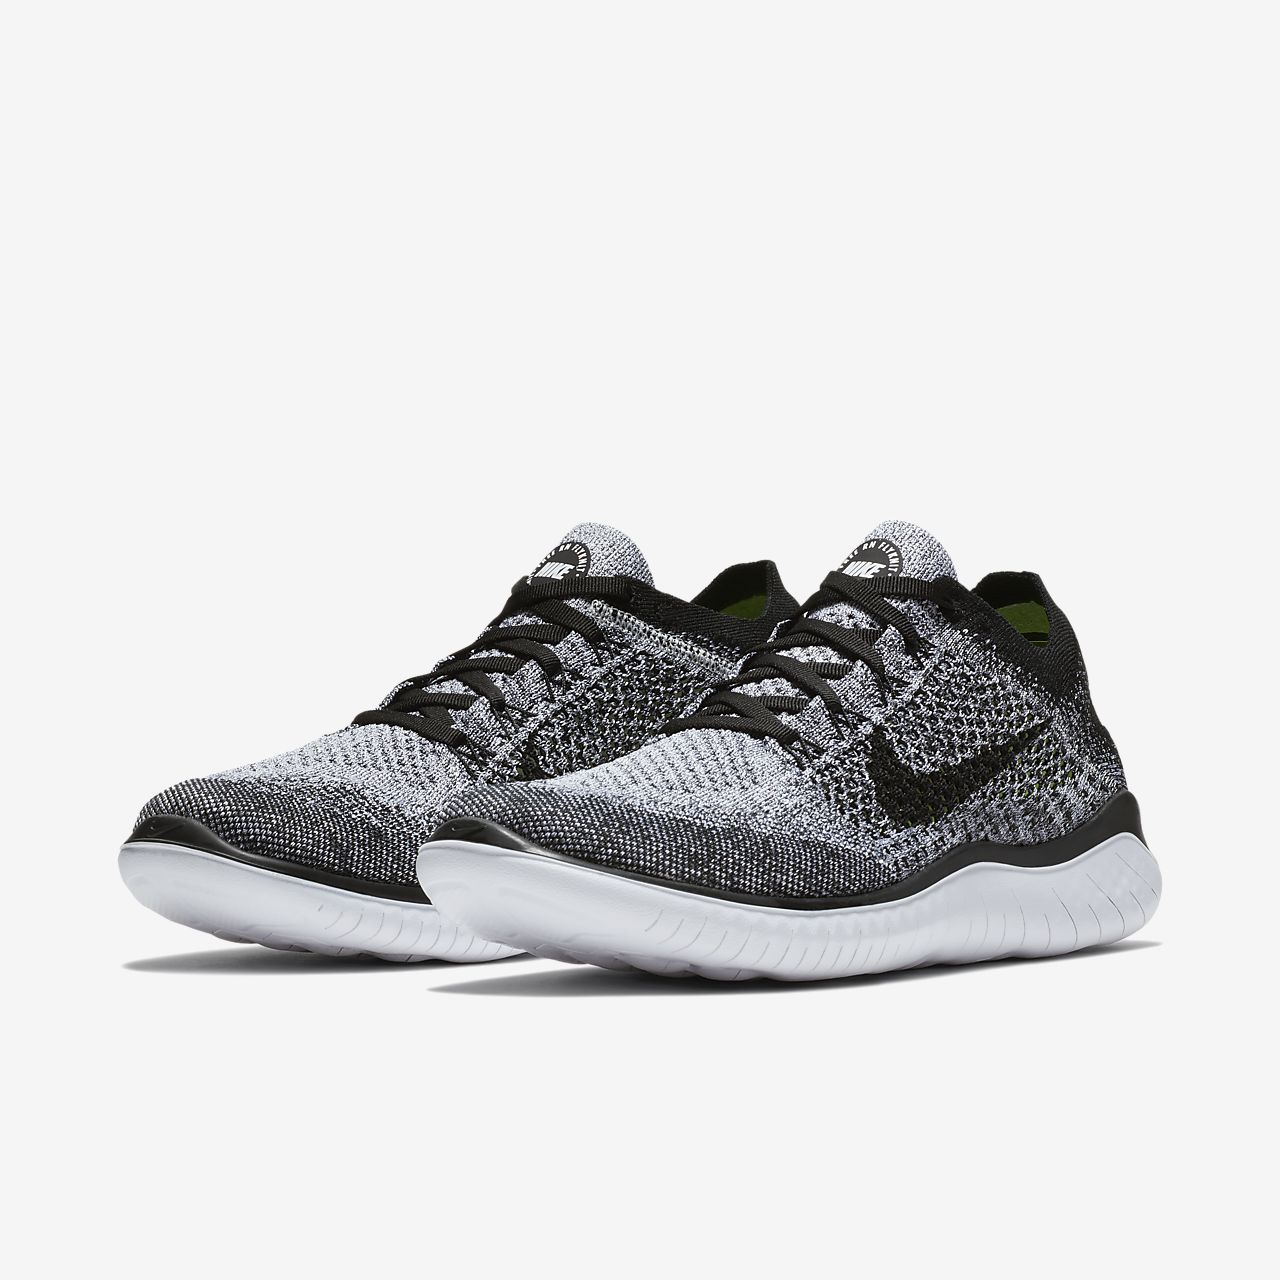 soldes chaussures nike homme 2018 calendar